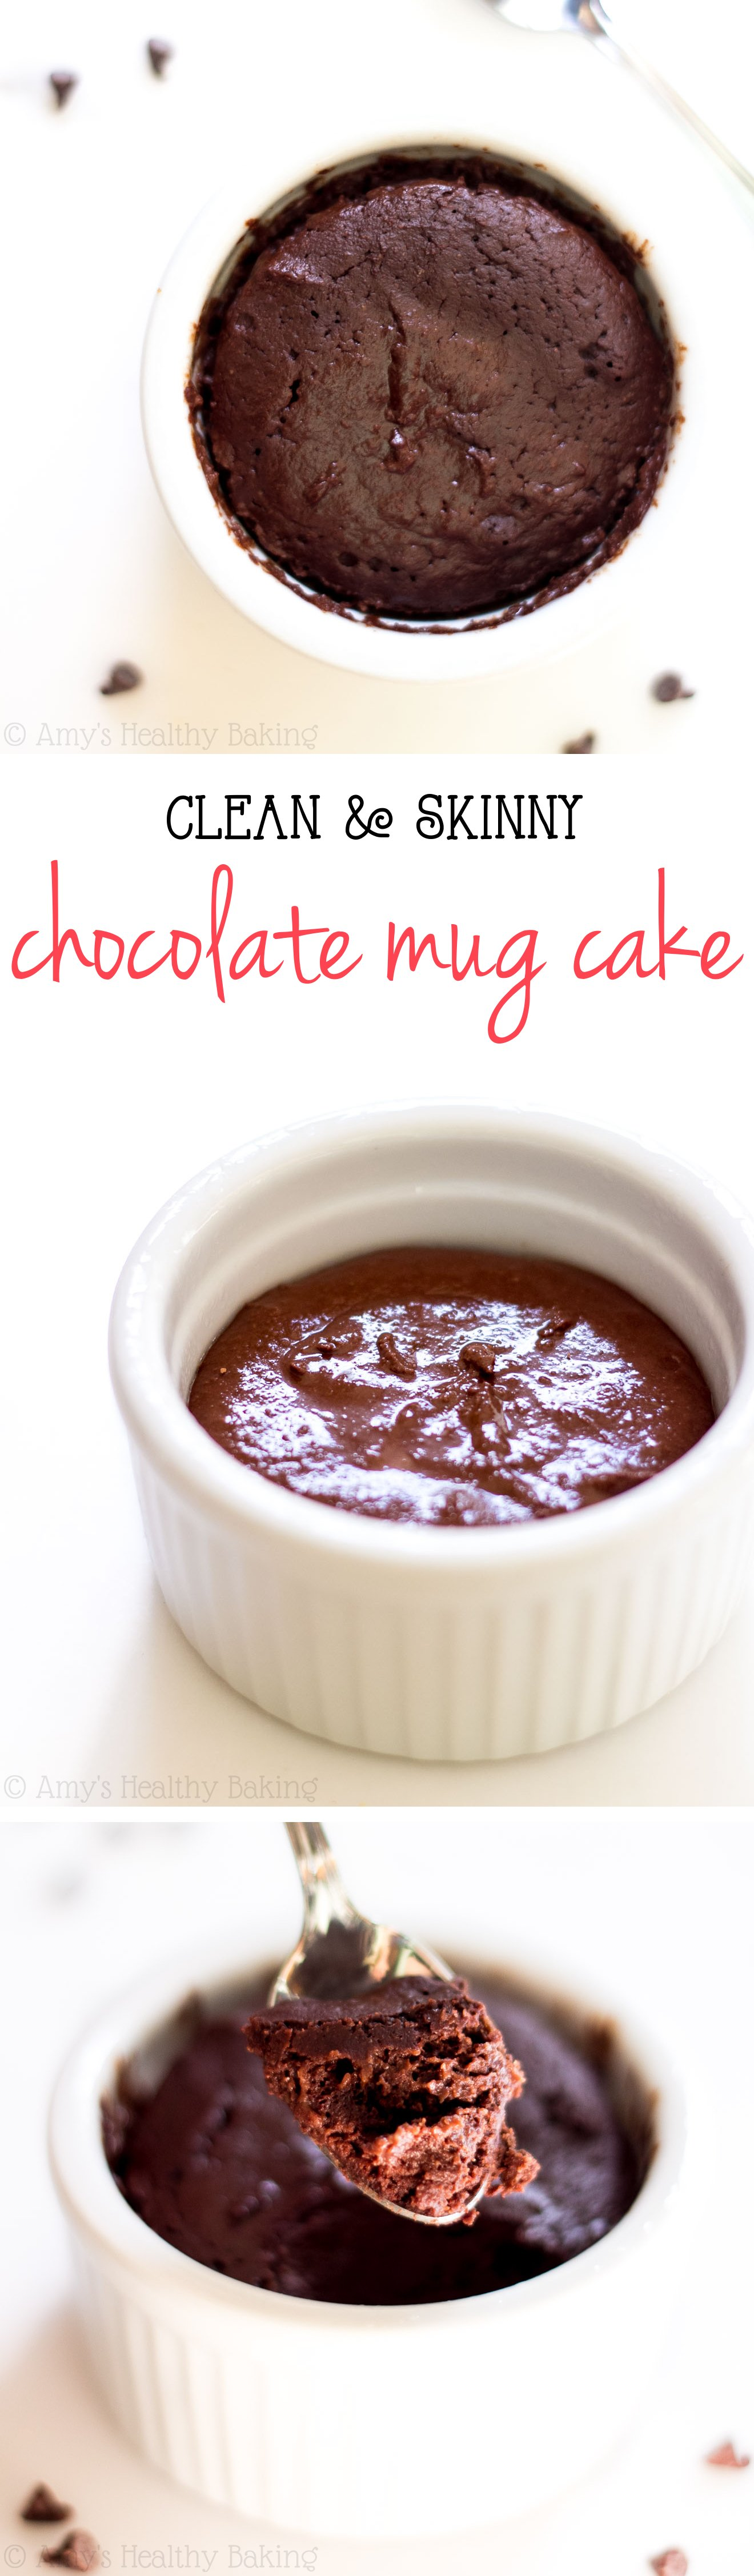 Chocolate Cake In A Mug Calories